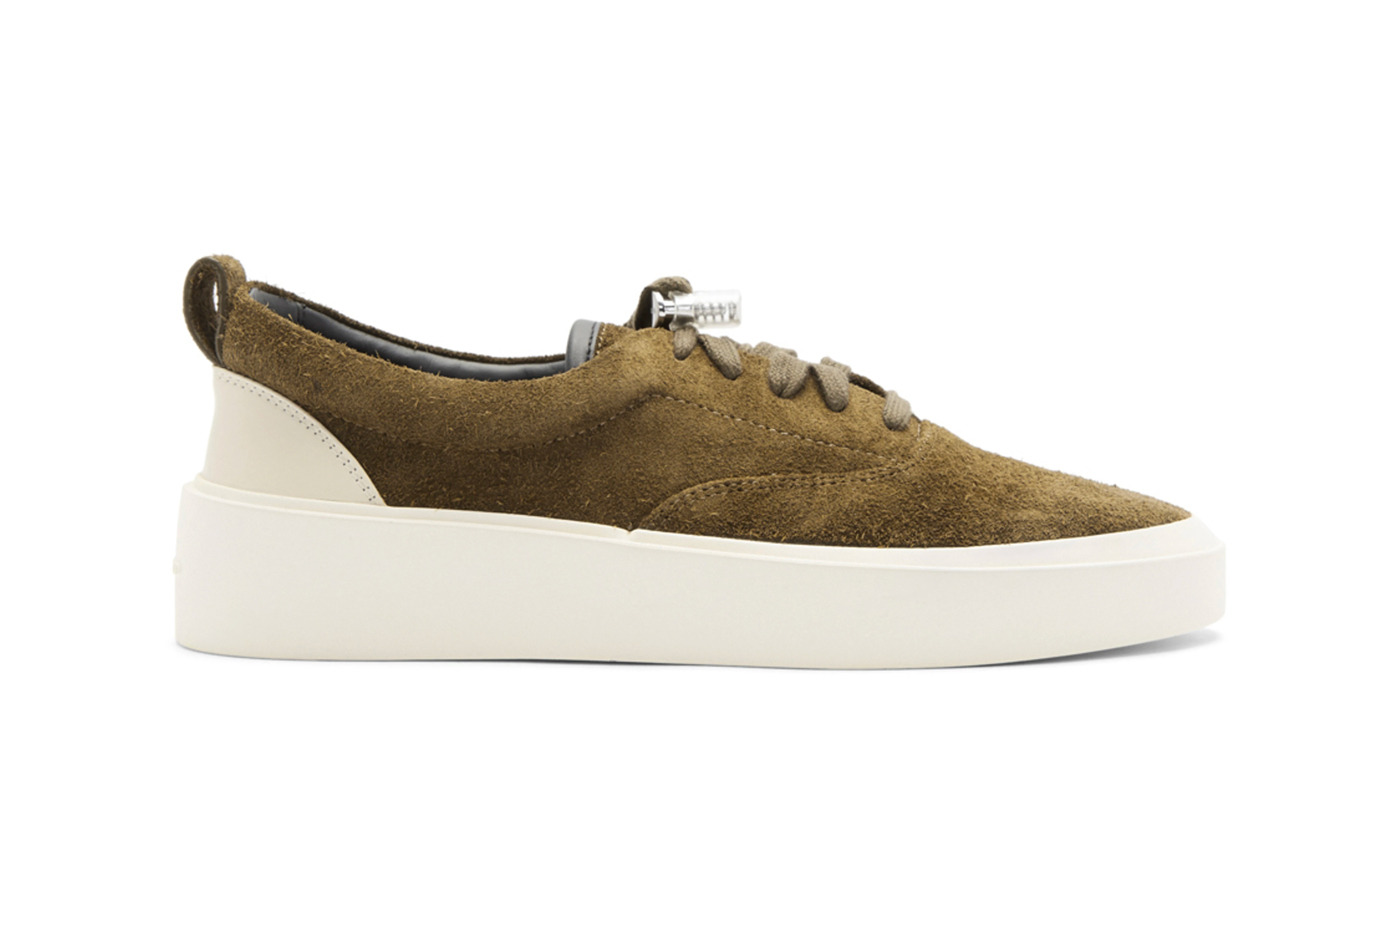 Fear of God SSENSE Exclusive Khaki Suede 101 Lace-Up Sneaker Release White Jerry Lorenzo Info